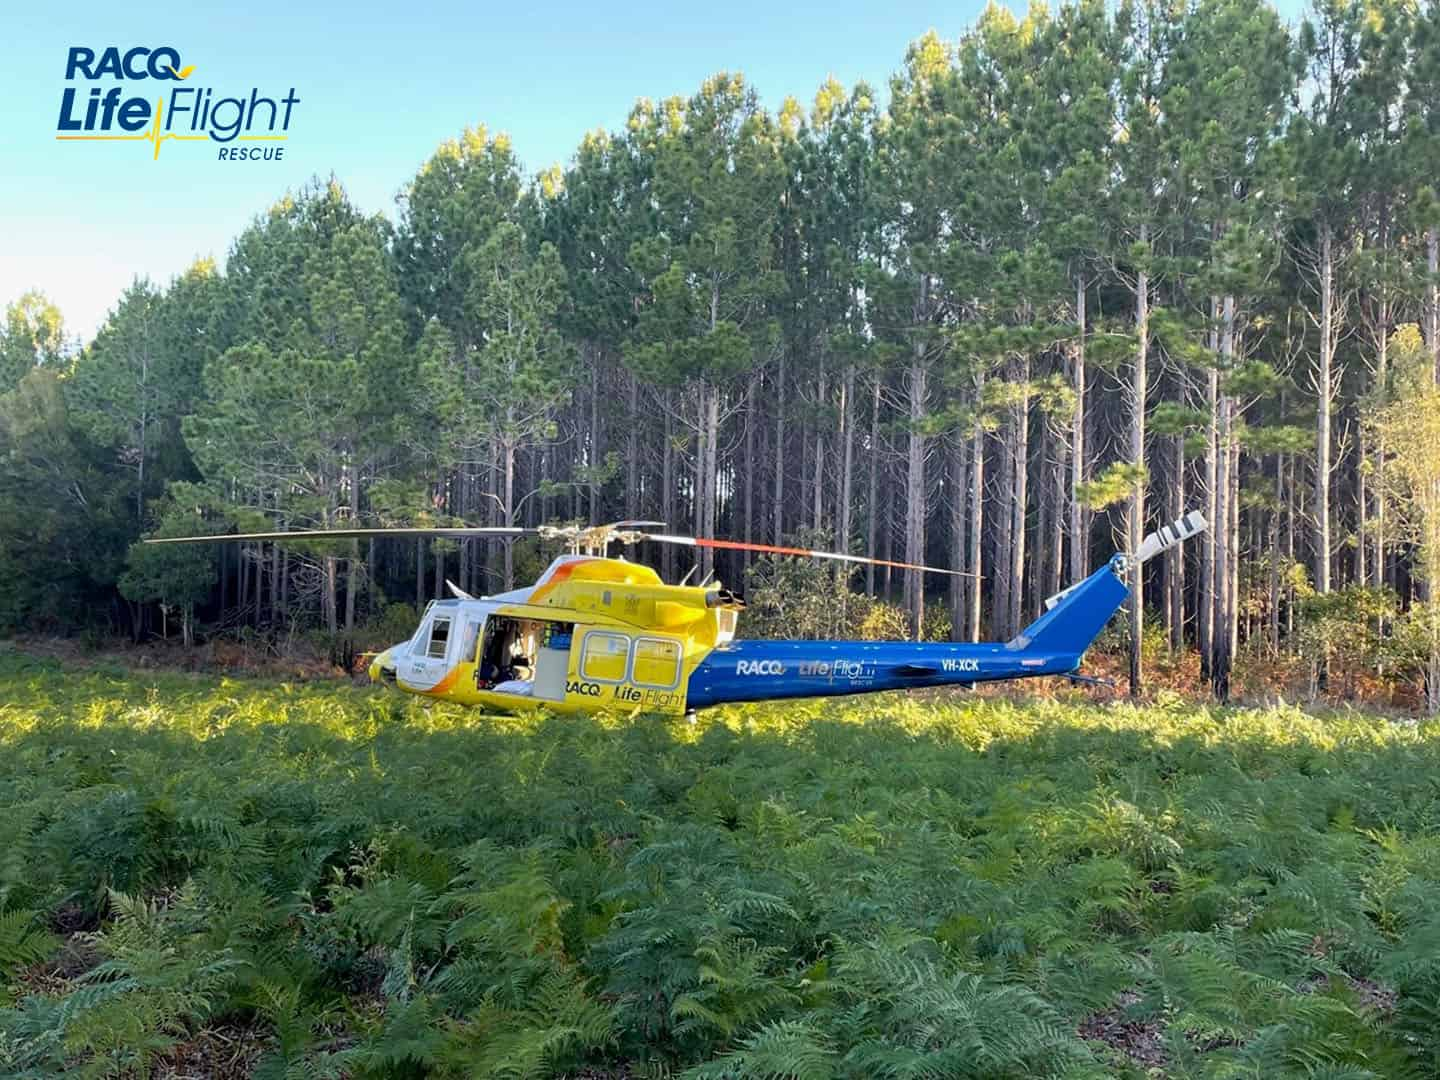 RACQ LifeFlight Rescue lands in state forest to airlift injured man to hospital